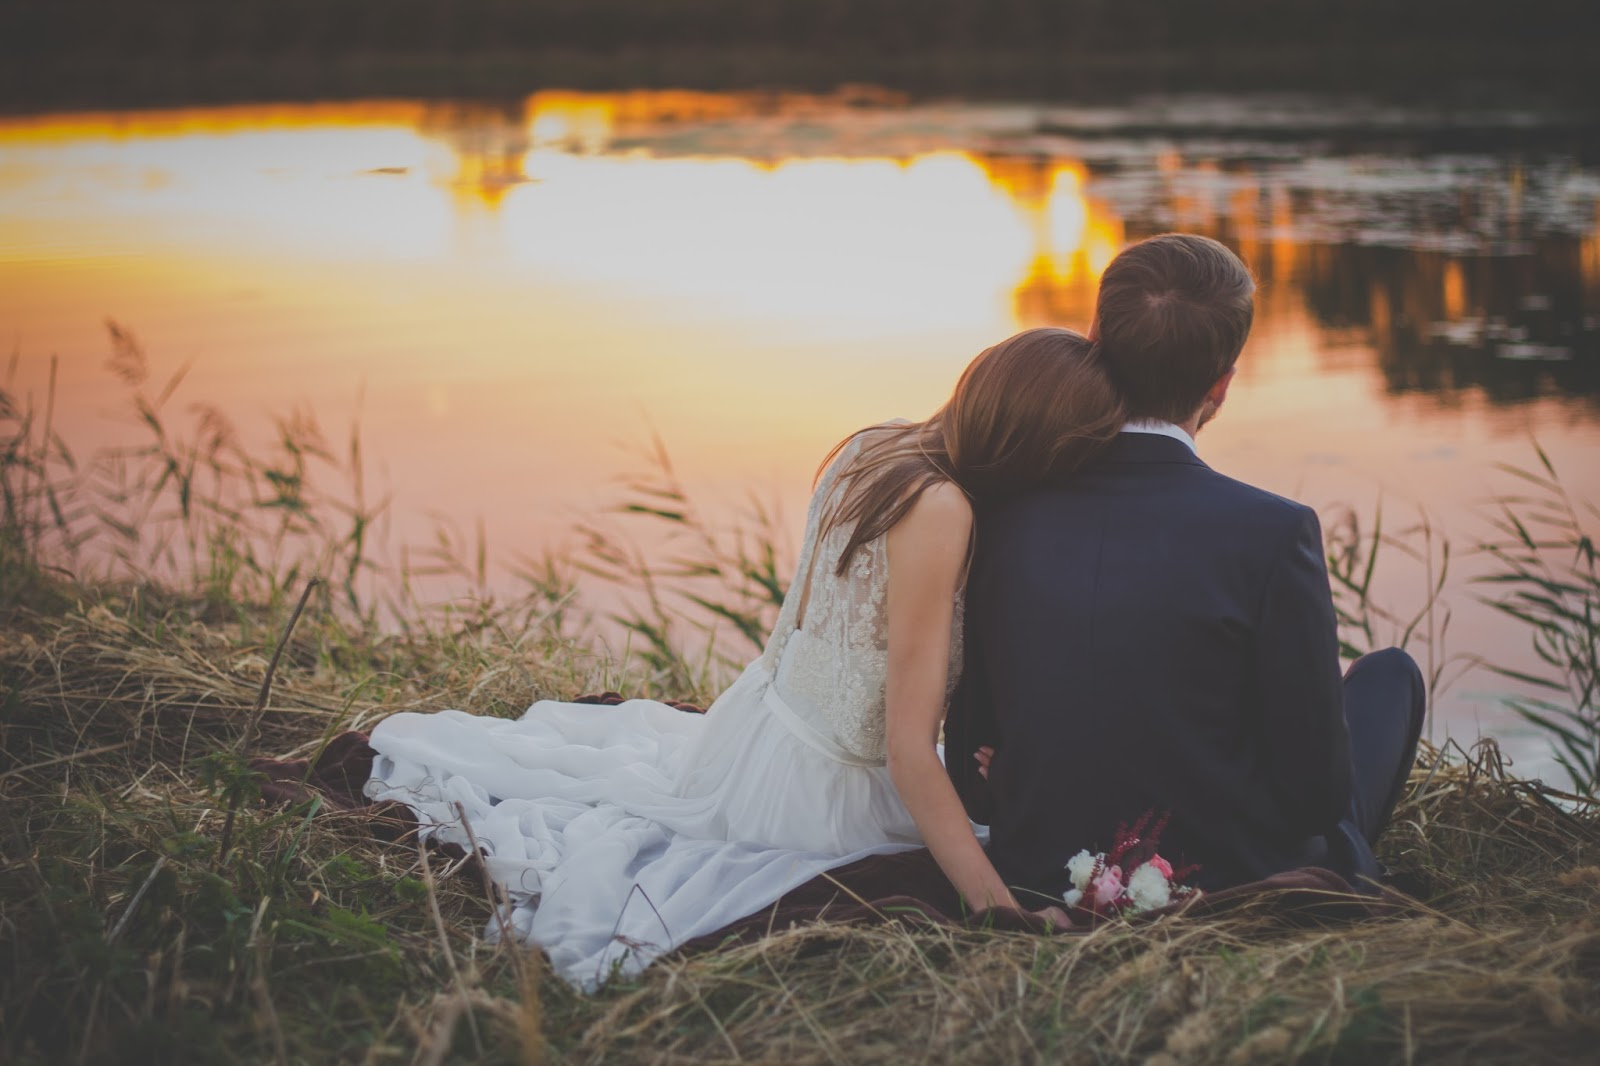 common relationship issues - man and woman in evening clothes watching the sunset at a lake